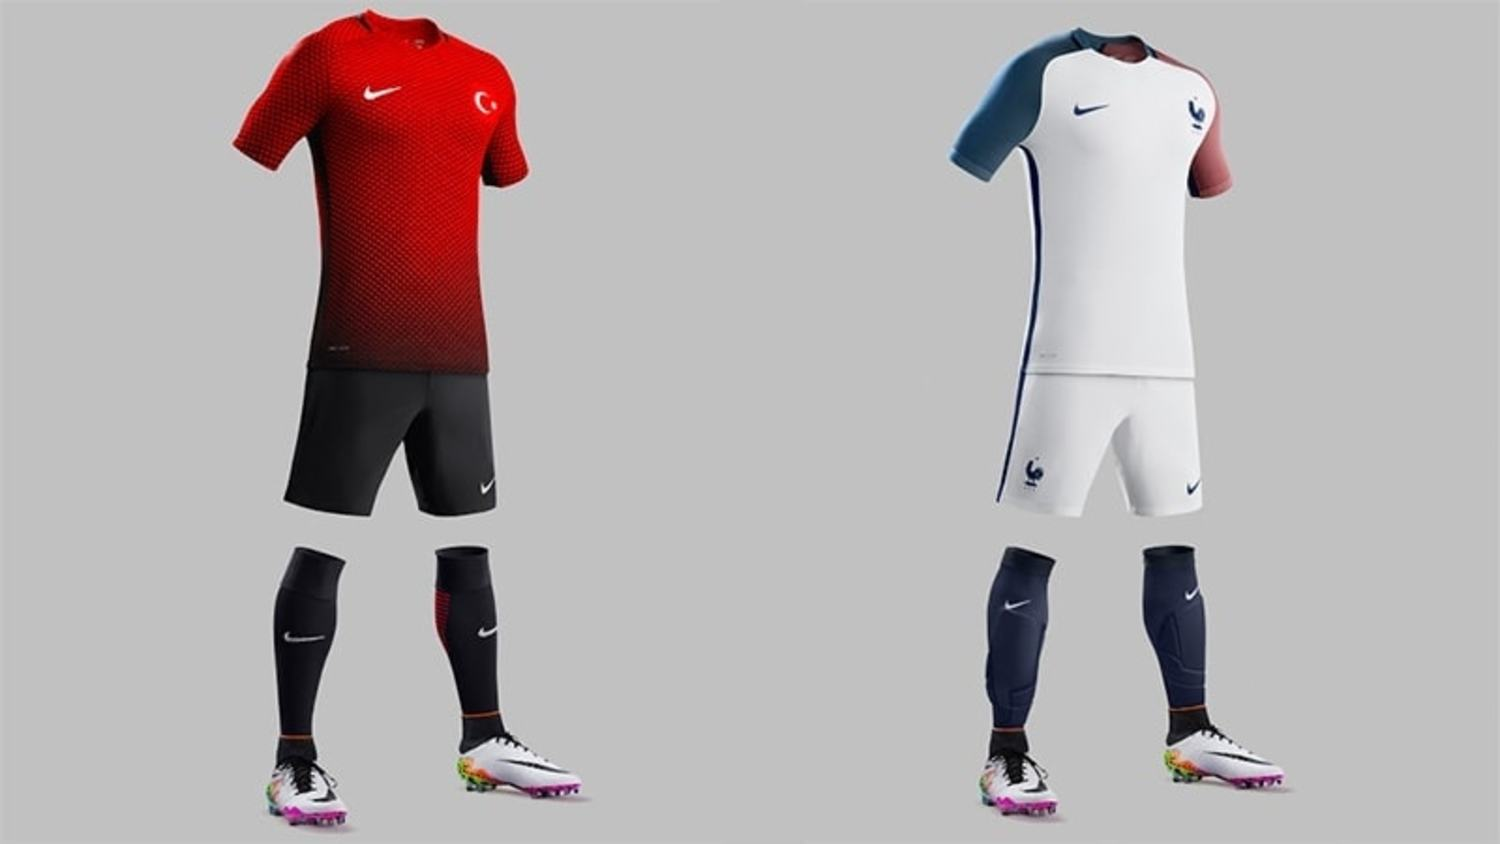 The Best International kits for Euro 2016